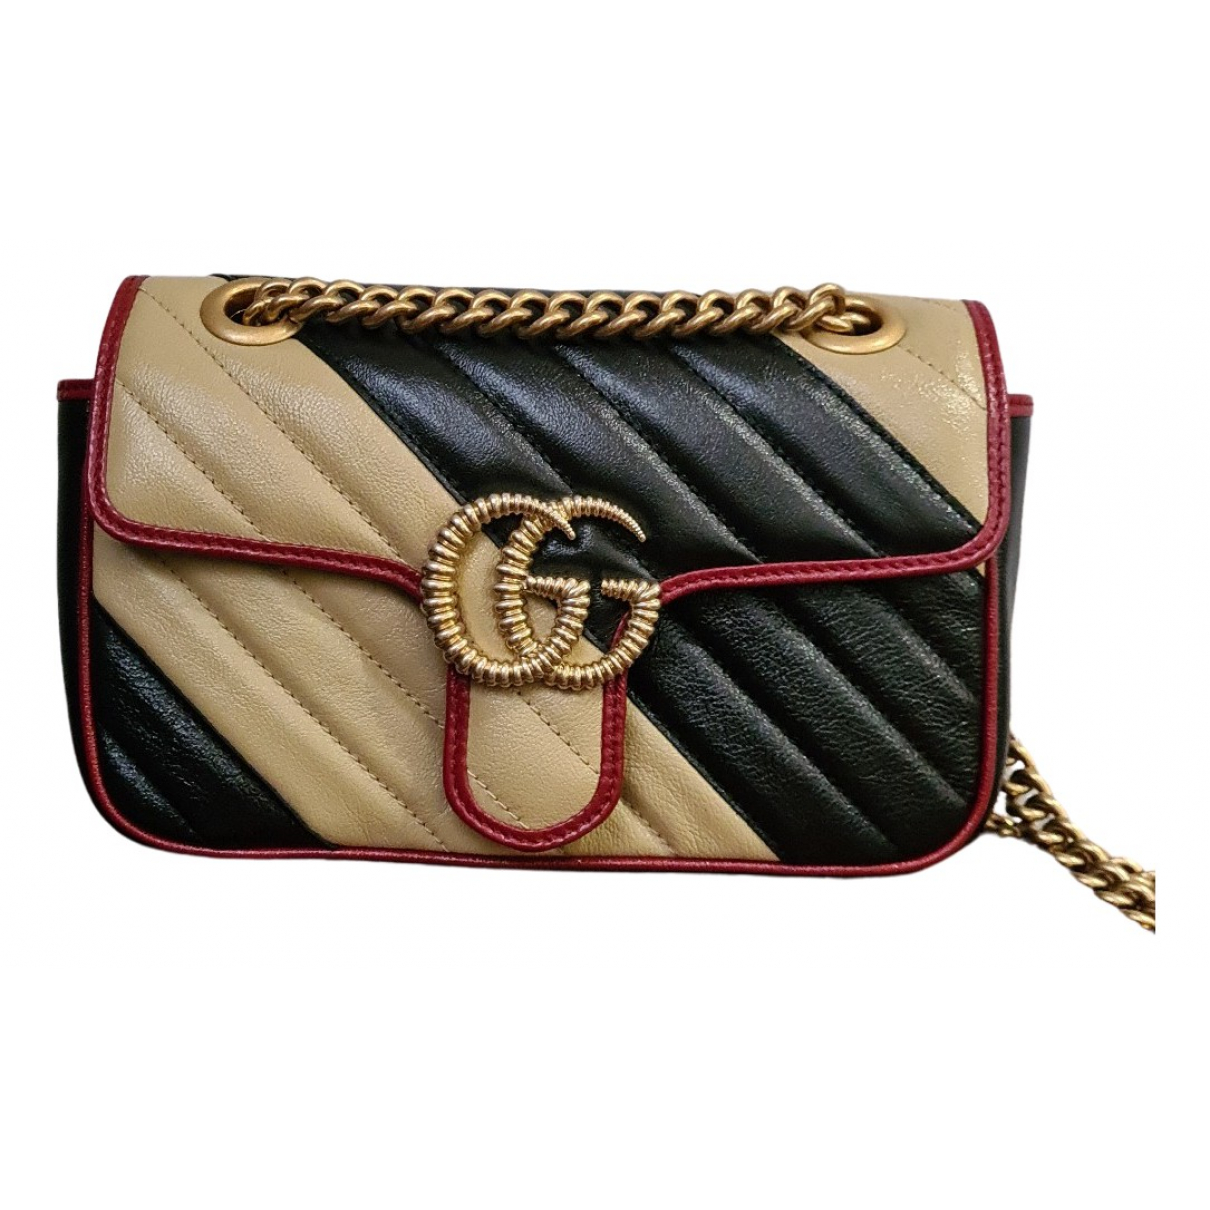 Gucci Marmont Black Leather handbag for Women N